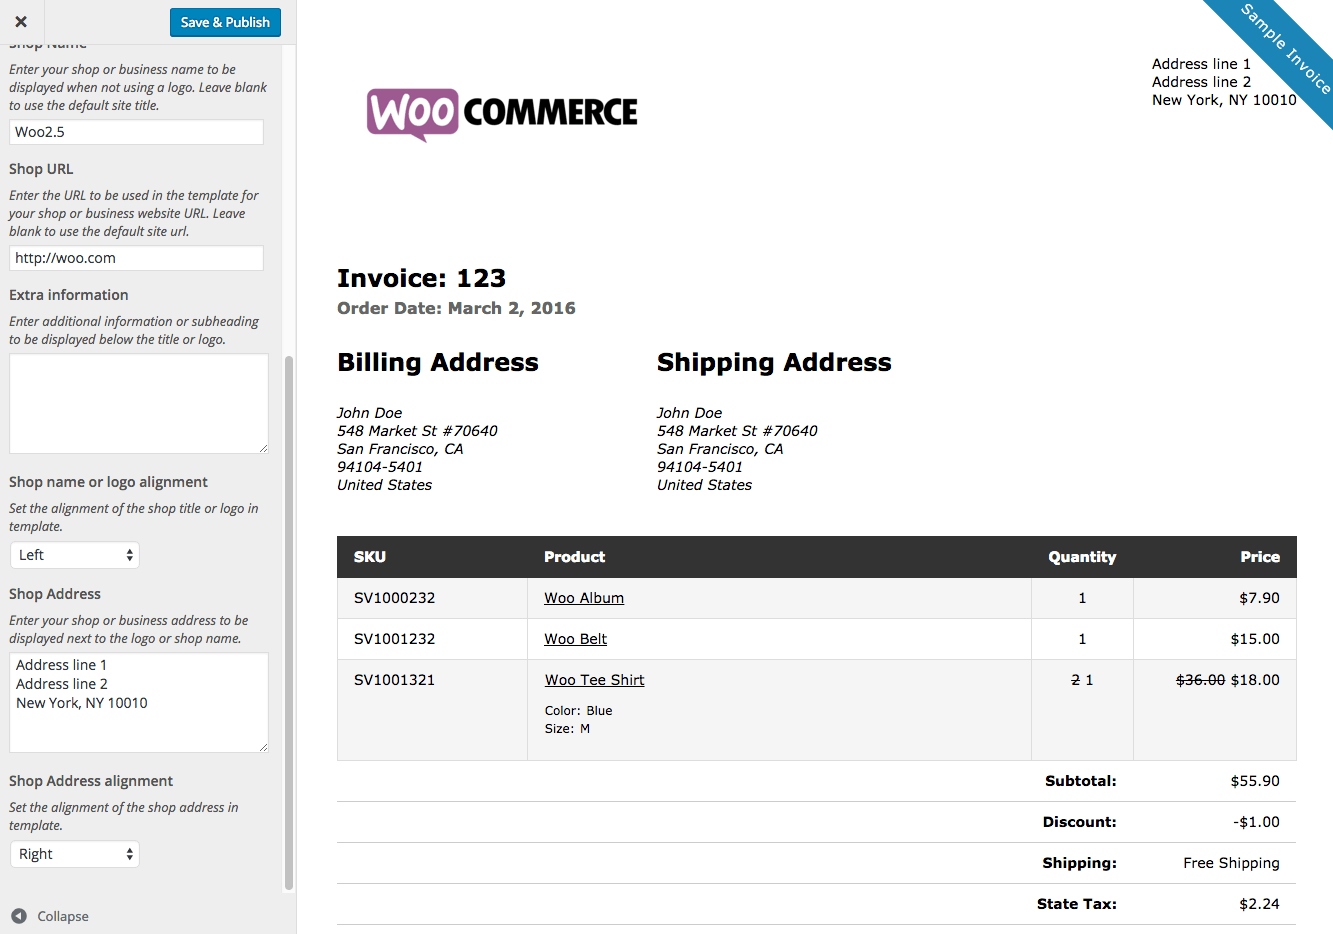 Soulfulpowerus  Mesmerizing Woocommerce Print Invoices Amp Packing Lists  Woocommerce Docs With Foxy Woocommerce Print Invoices  Packing Lists Customizer With Attractive Toyota Tundra Invoice Price Also Invoice Letter Sample In Addition Customize Invoice And What Is Invoice Price On A Car As Well As Bmw Invoice Pricing Additionally Invoice In Arrears From Docswoocommercecom With Soulfulpowerus  Foxy Woocommerce Print Invoices Amp Packing Lists  Woocommerce Docs With Attractive Woocommerce Print Invoices  Packing Lists Customizer And Mesmerizing Toyota Tundra Invoice Price Also Invoice Letter Sample In Addition Customize Invoice From Docswoocommercecom